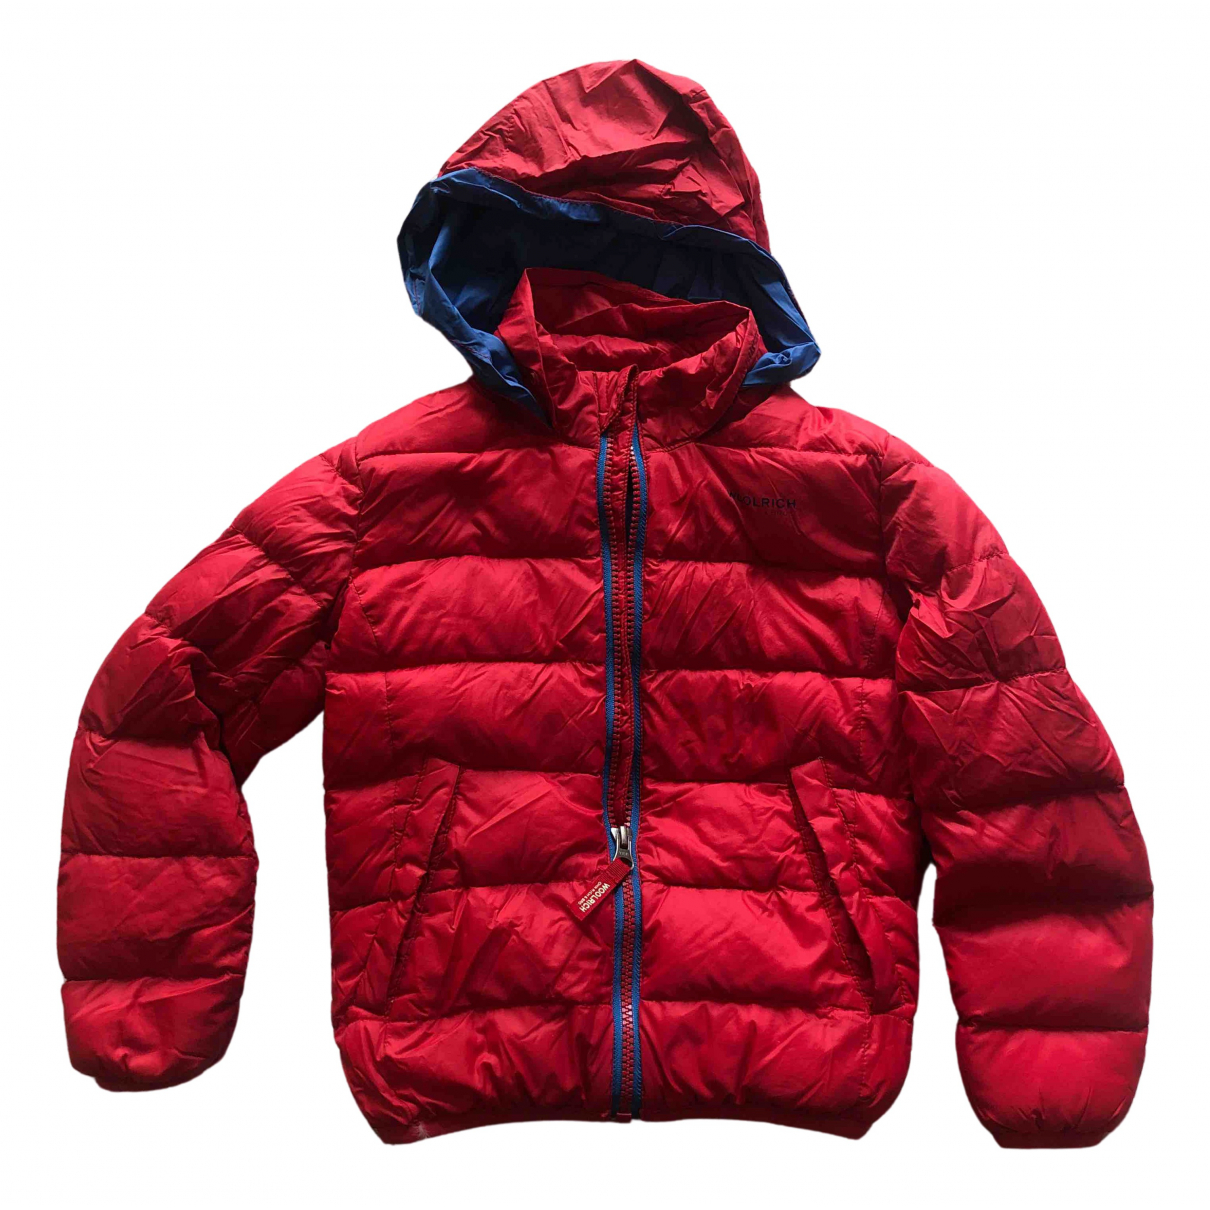 Woolrich N Red Linen jacket & coat for Kids 4 years - up to 102cm FR